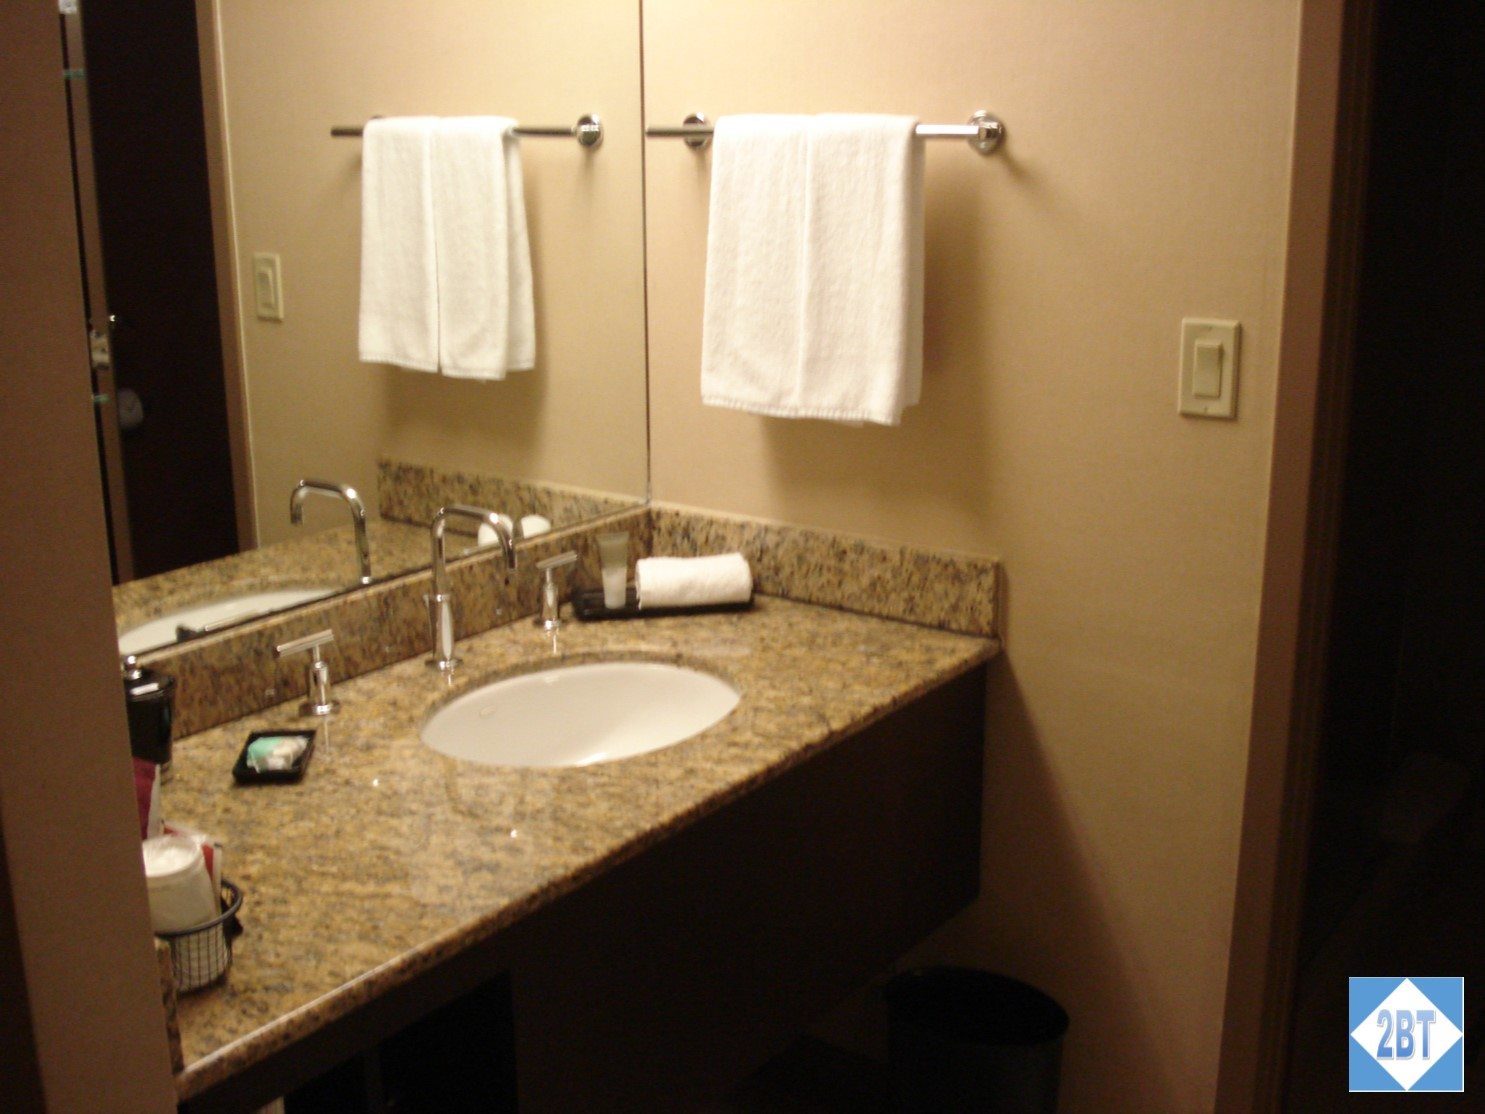 Bathroom Vanities Dfw spb hyatt regency dfw | 2b traveling